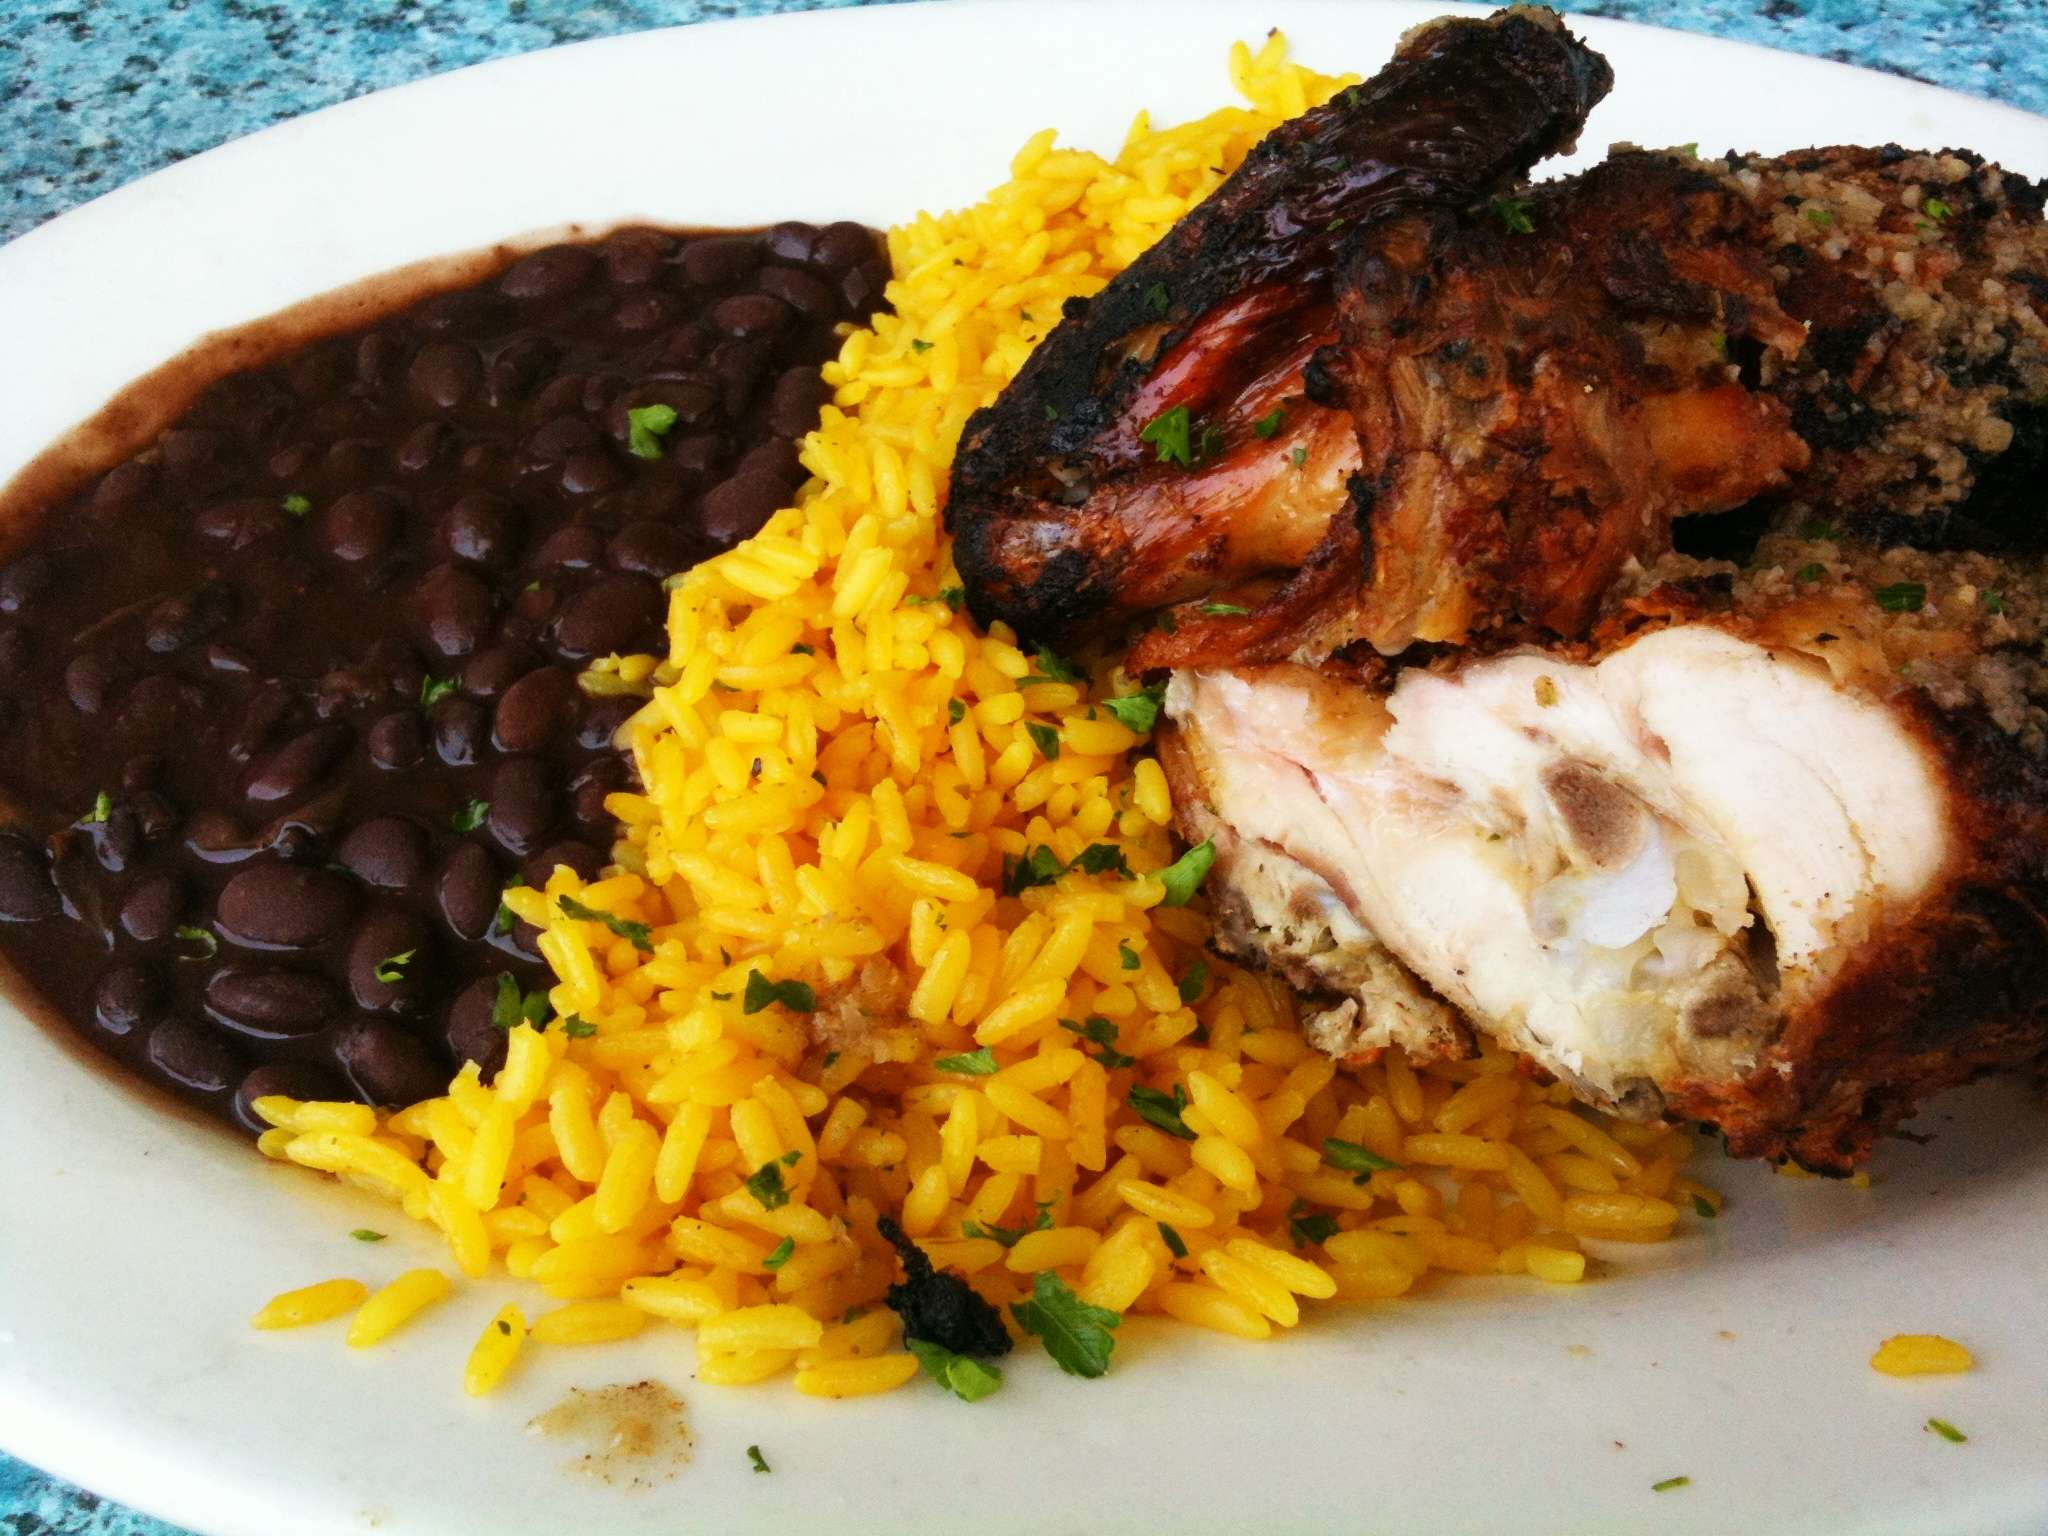 cuban cuisine Havana 1957 combines the flavors of traditional cuban cuisine with the enchantment and sophistication of havana in the 1950's.